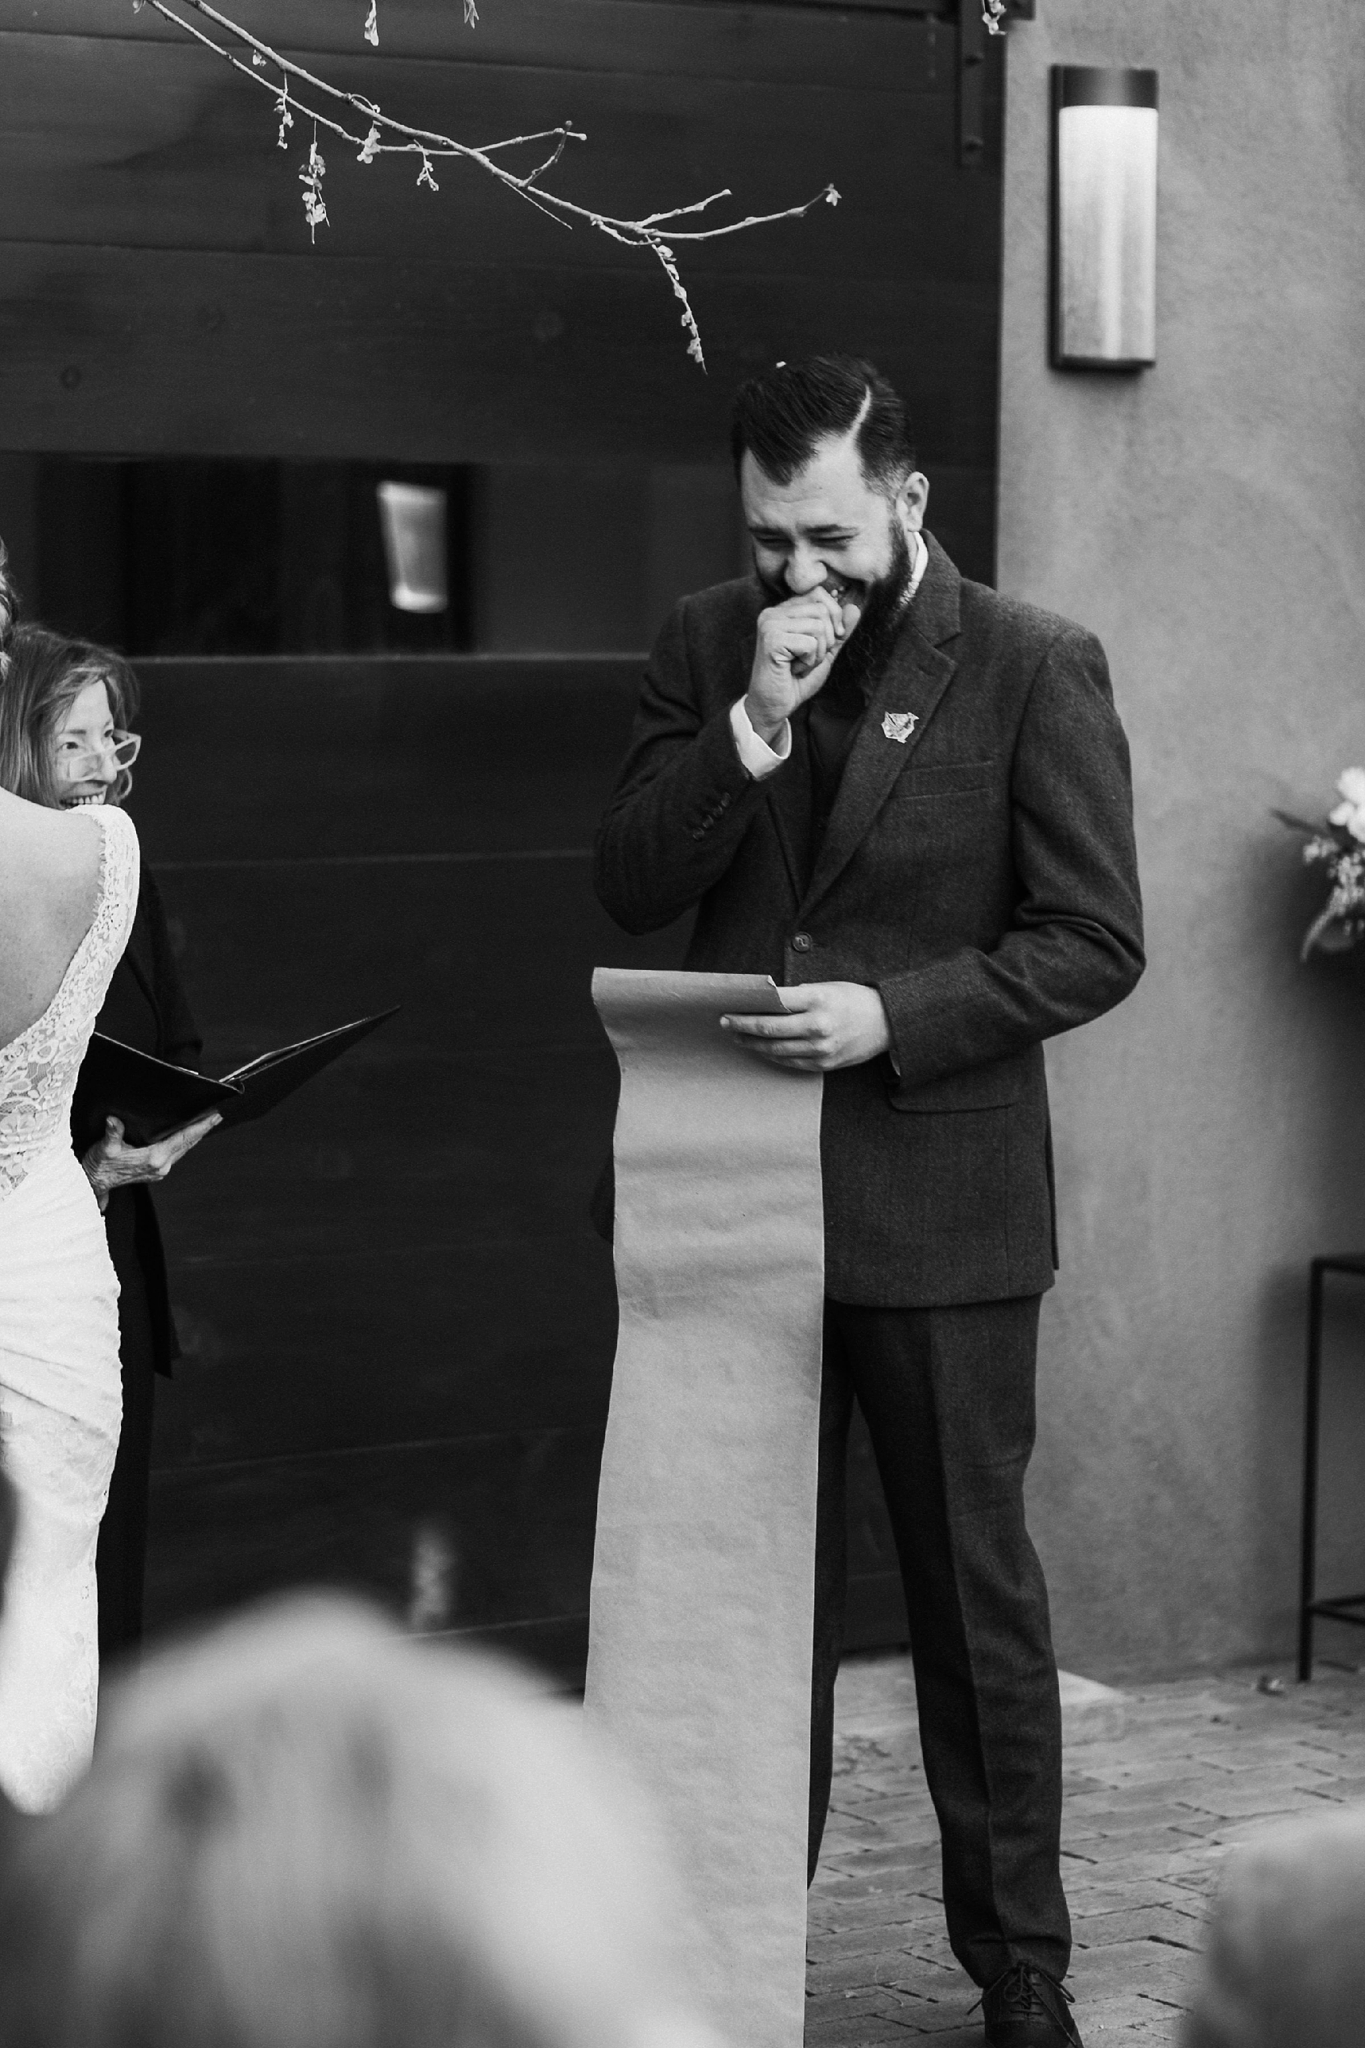 Alicia+lucia+photography+-+albuquerque+wedding+photographer+-+santa+fe+wedding+photography+-+new+mexico+wedding+photographer+-+new+mexico+wedding+-+wedding+vows+-+writing+your+own+vows+-+wedding+inspo_0024.jpg